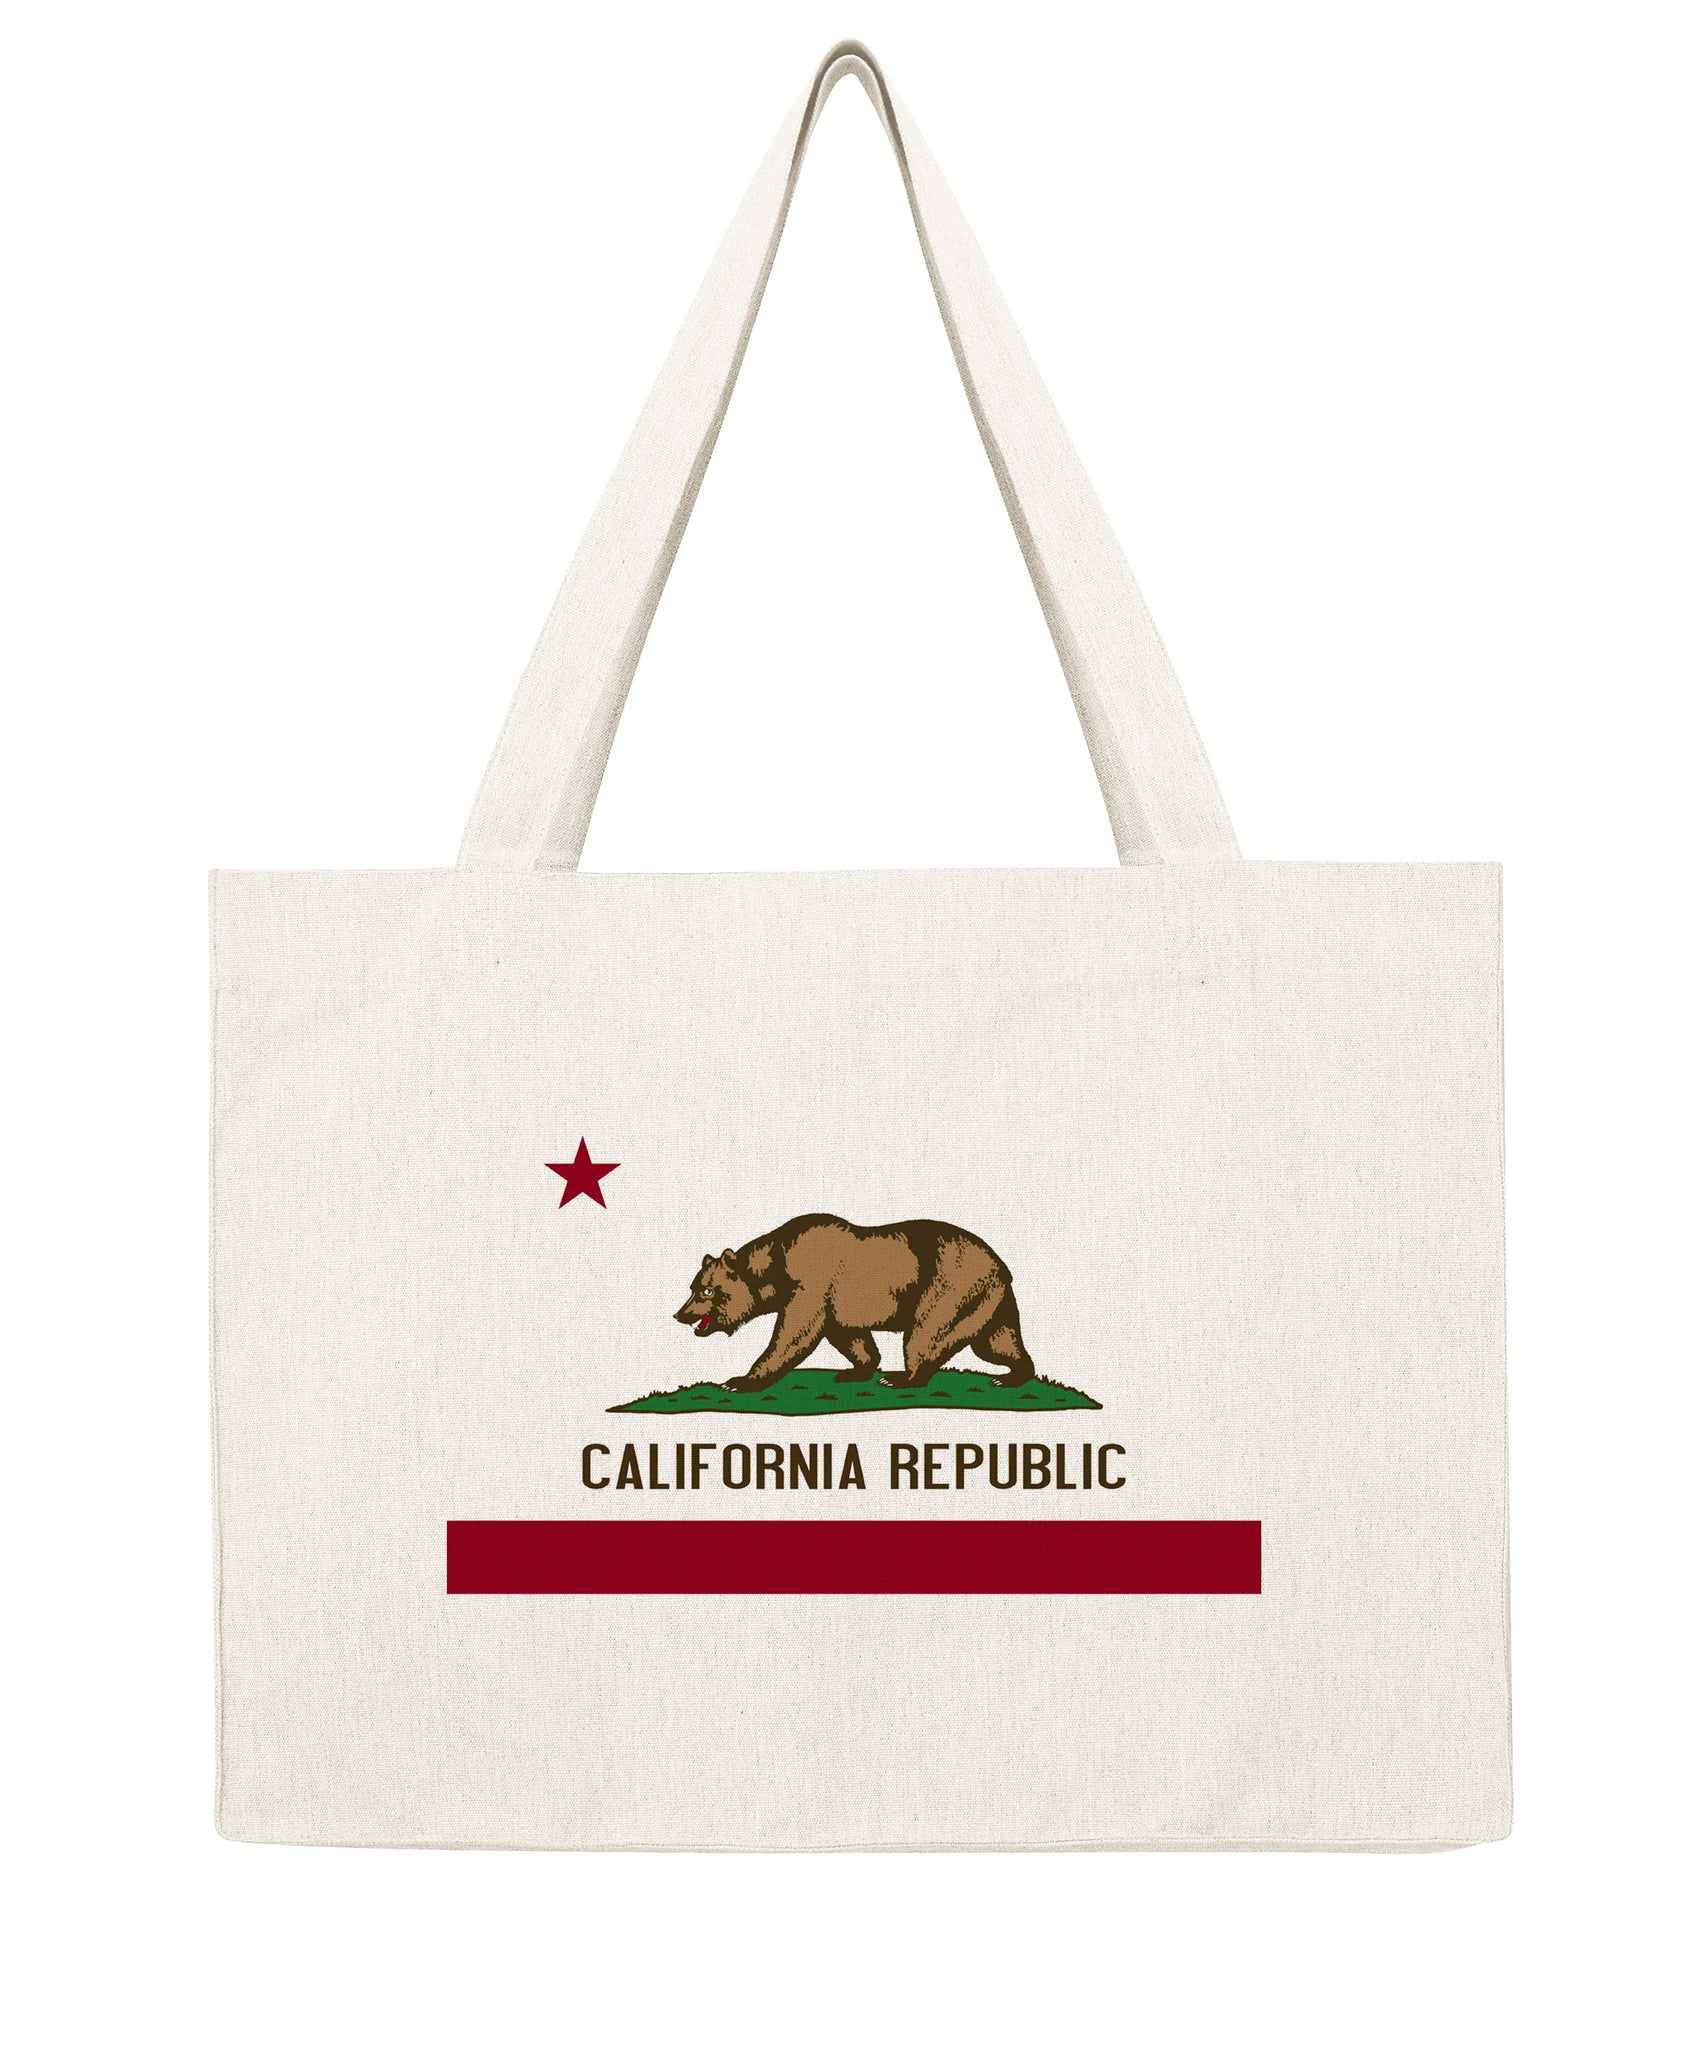 California Republic - Shopping bag-Sacs-Atelier Amelot